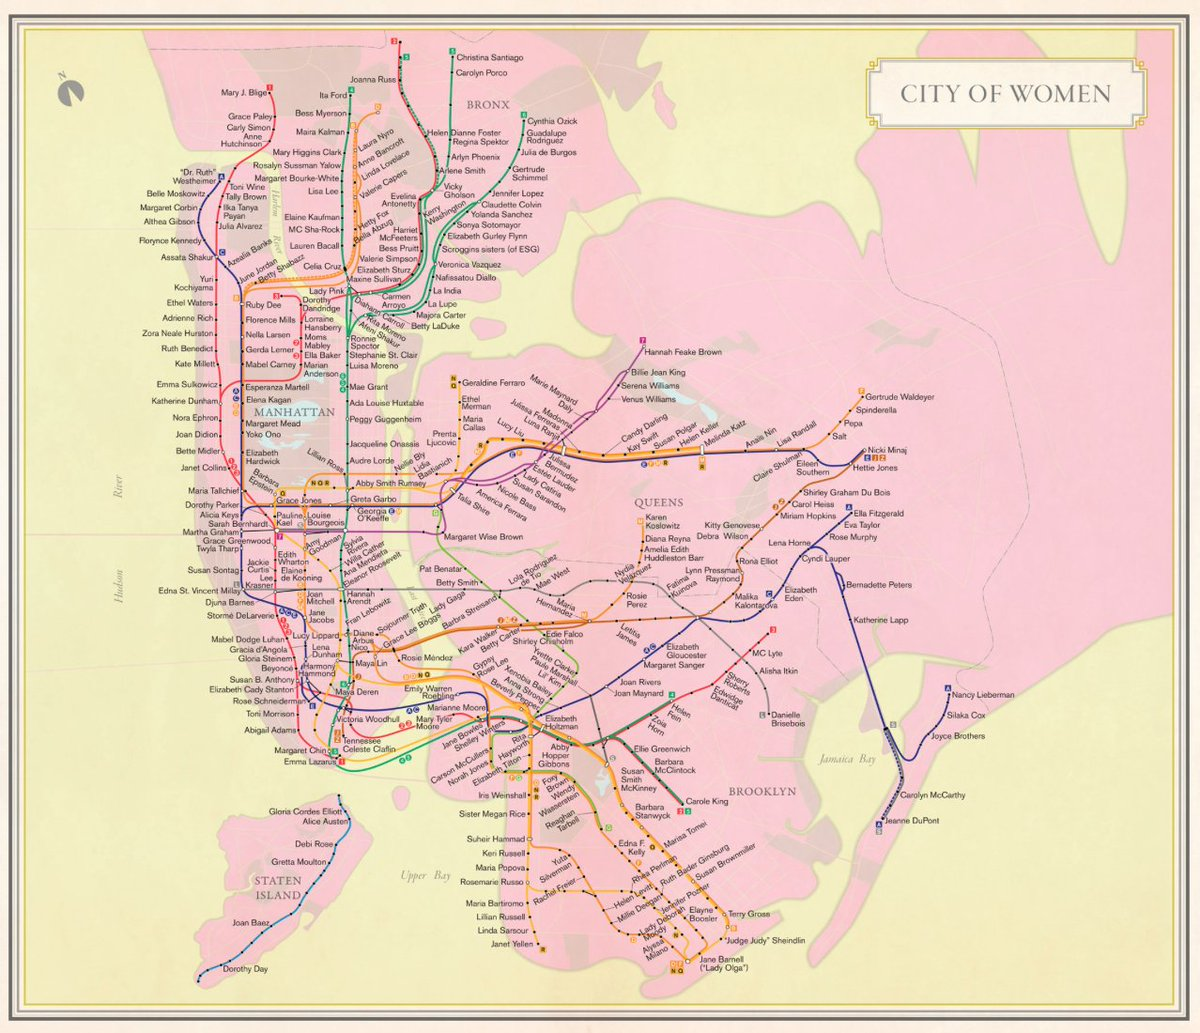 New Nyc Subway Map 2017.Check Out The Nyc Subway Map That Pays Homage To The City S Most